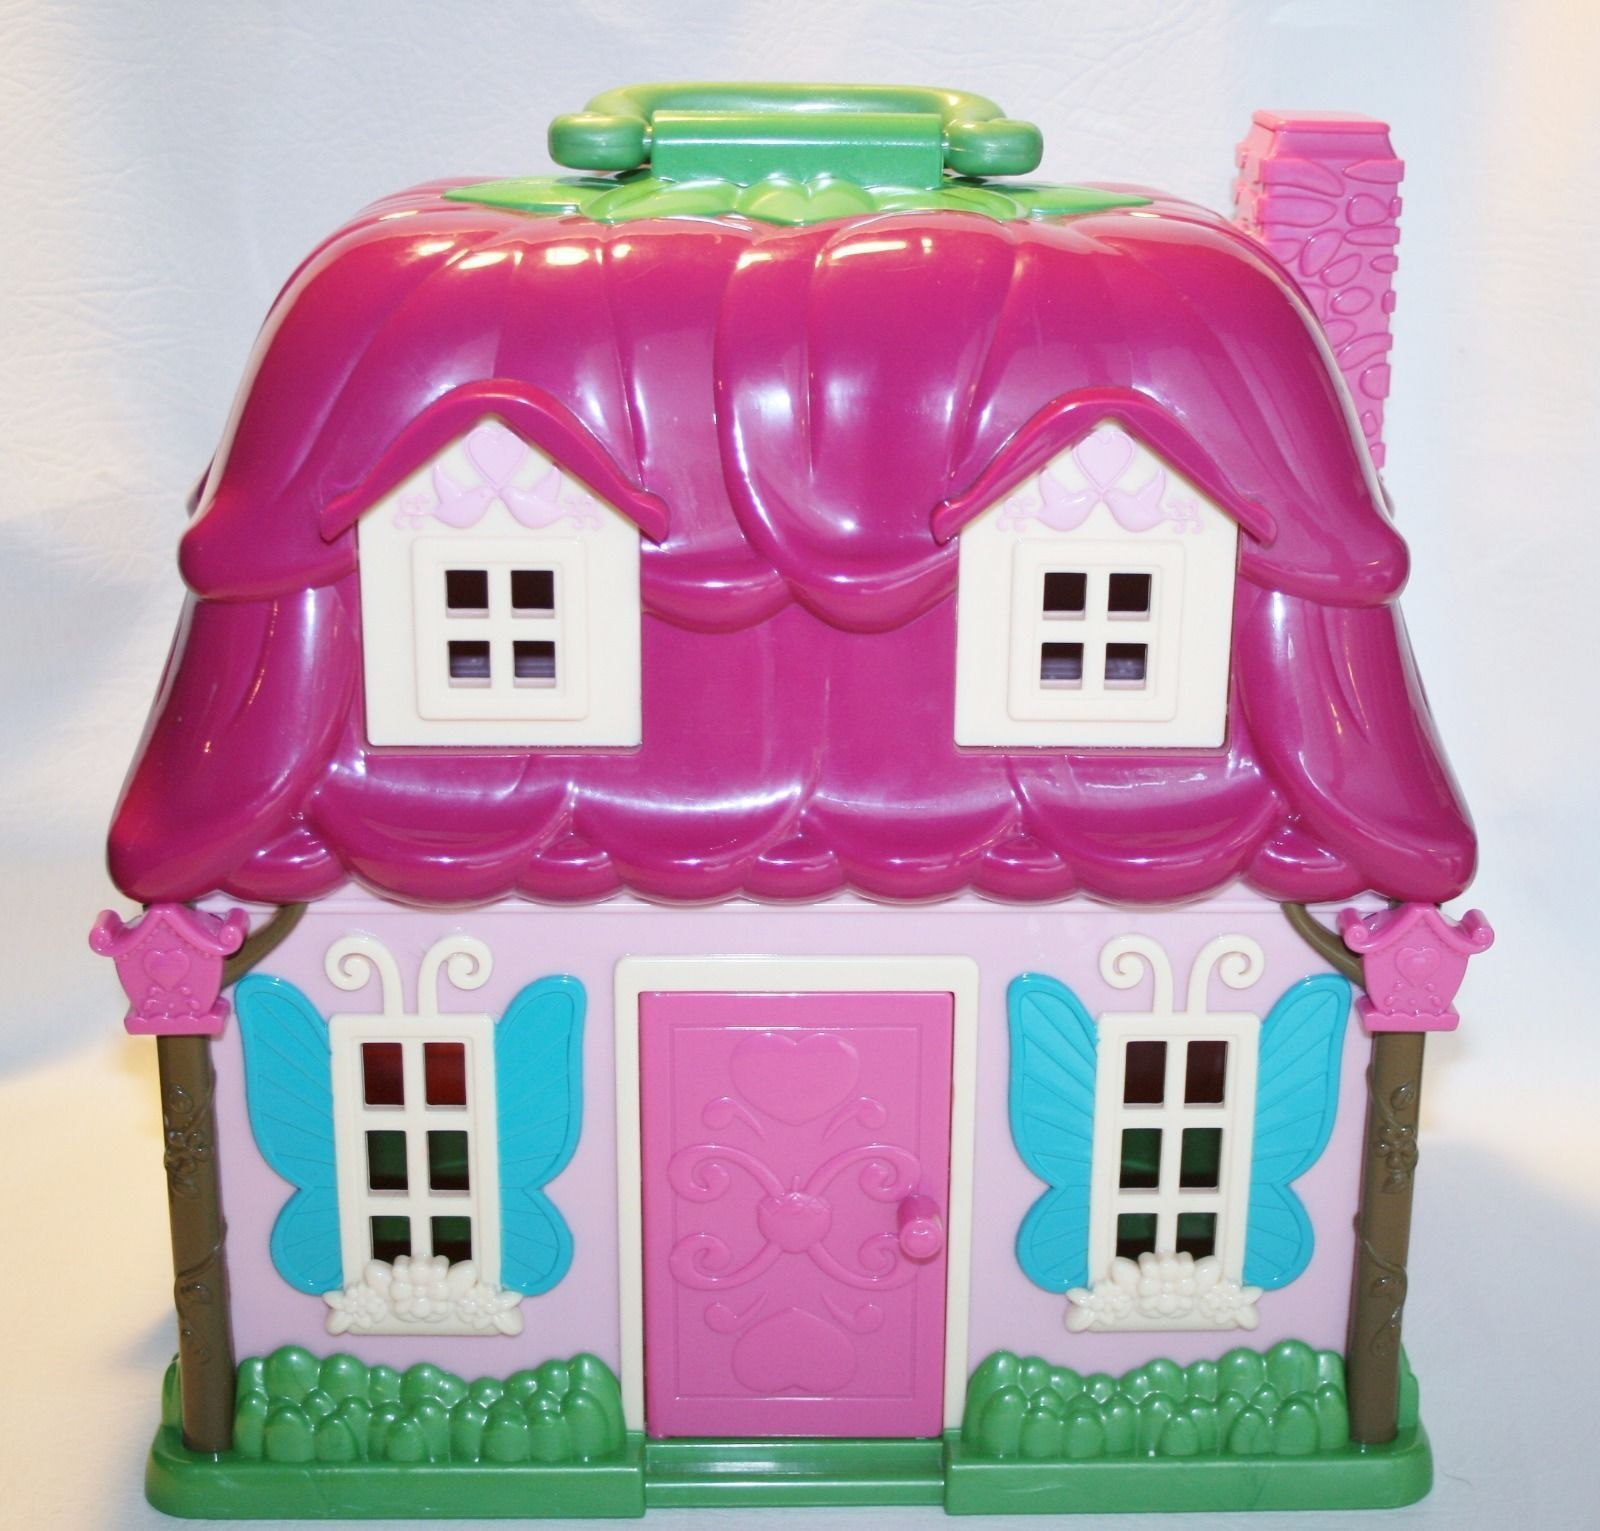 Toys and me images  Cute little house No accessoriesHeavy quality toy Contact me with